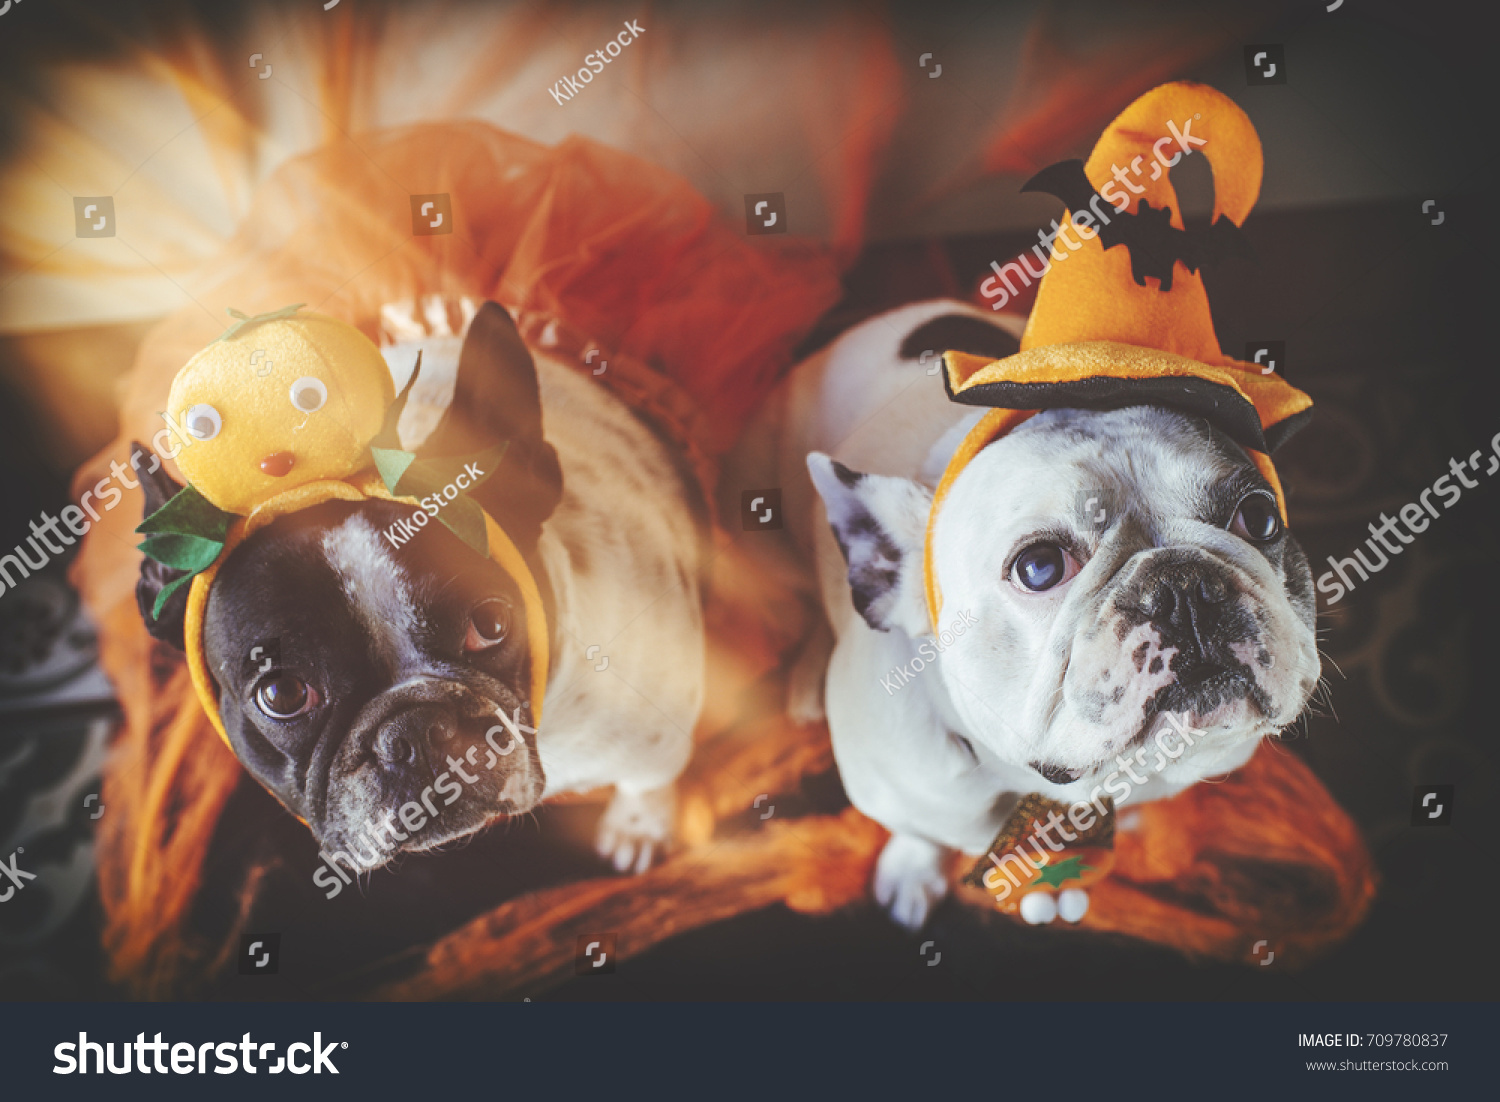 couple of dogs with halloween costume & Couple Dogs Halloween Costume Stock Photo (Royalty Free) 709780837 ...